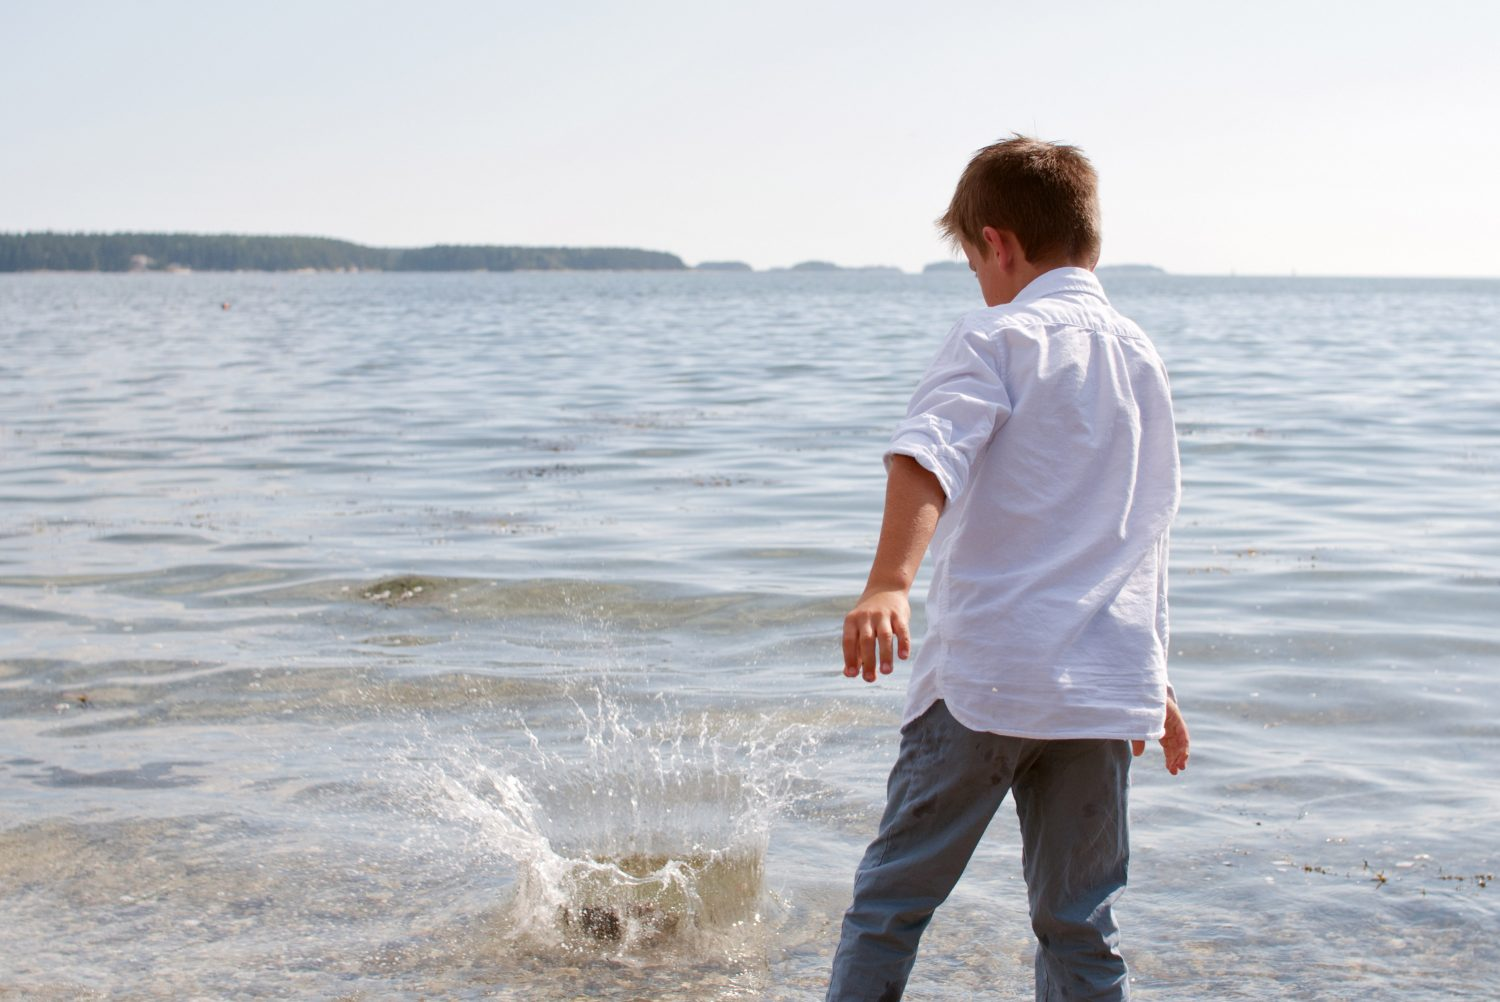 young boy throwing big rock into the salt water